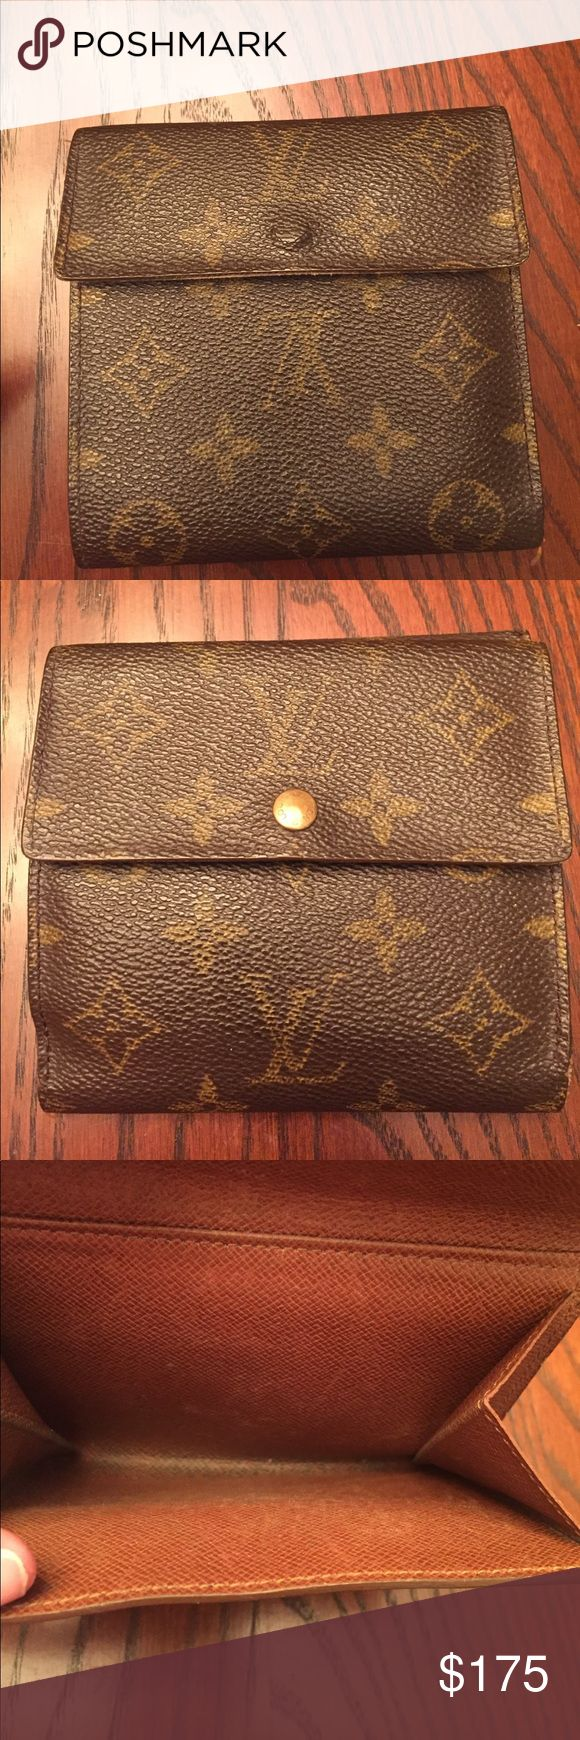 Louis Vuitton wallet Without giving away my age my parents bought this for me almost 20 years ago. Since I remember the cost being 525 dollars and thinking I can not believe they bought me this wallet. Purchased from Louis Vuitton in the Houston Galleria. For the age I would say in great condition, and it has just sat in a draw for years. Needs new life. Always happy to take more pics. Some scratching on inside and wear where money slides in. On the edges of wallet some pealing, but smooth…